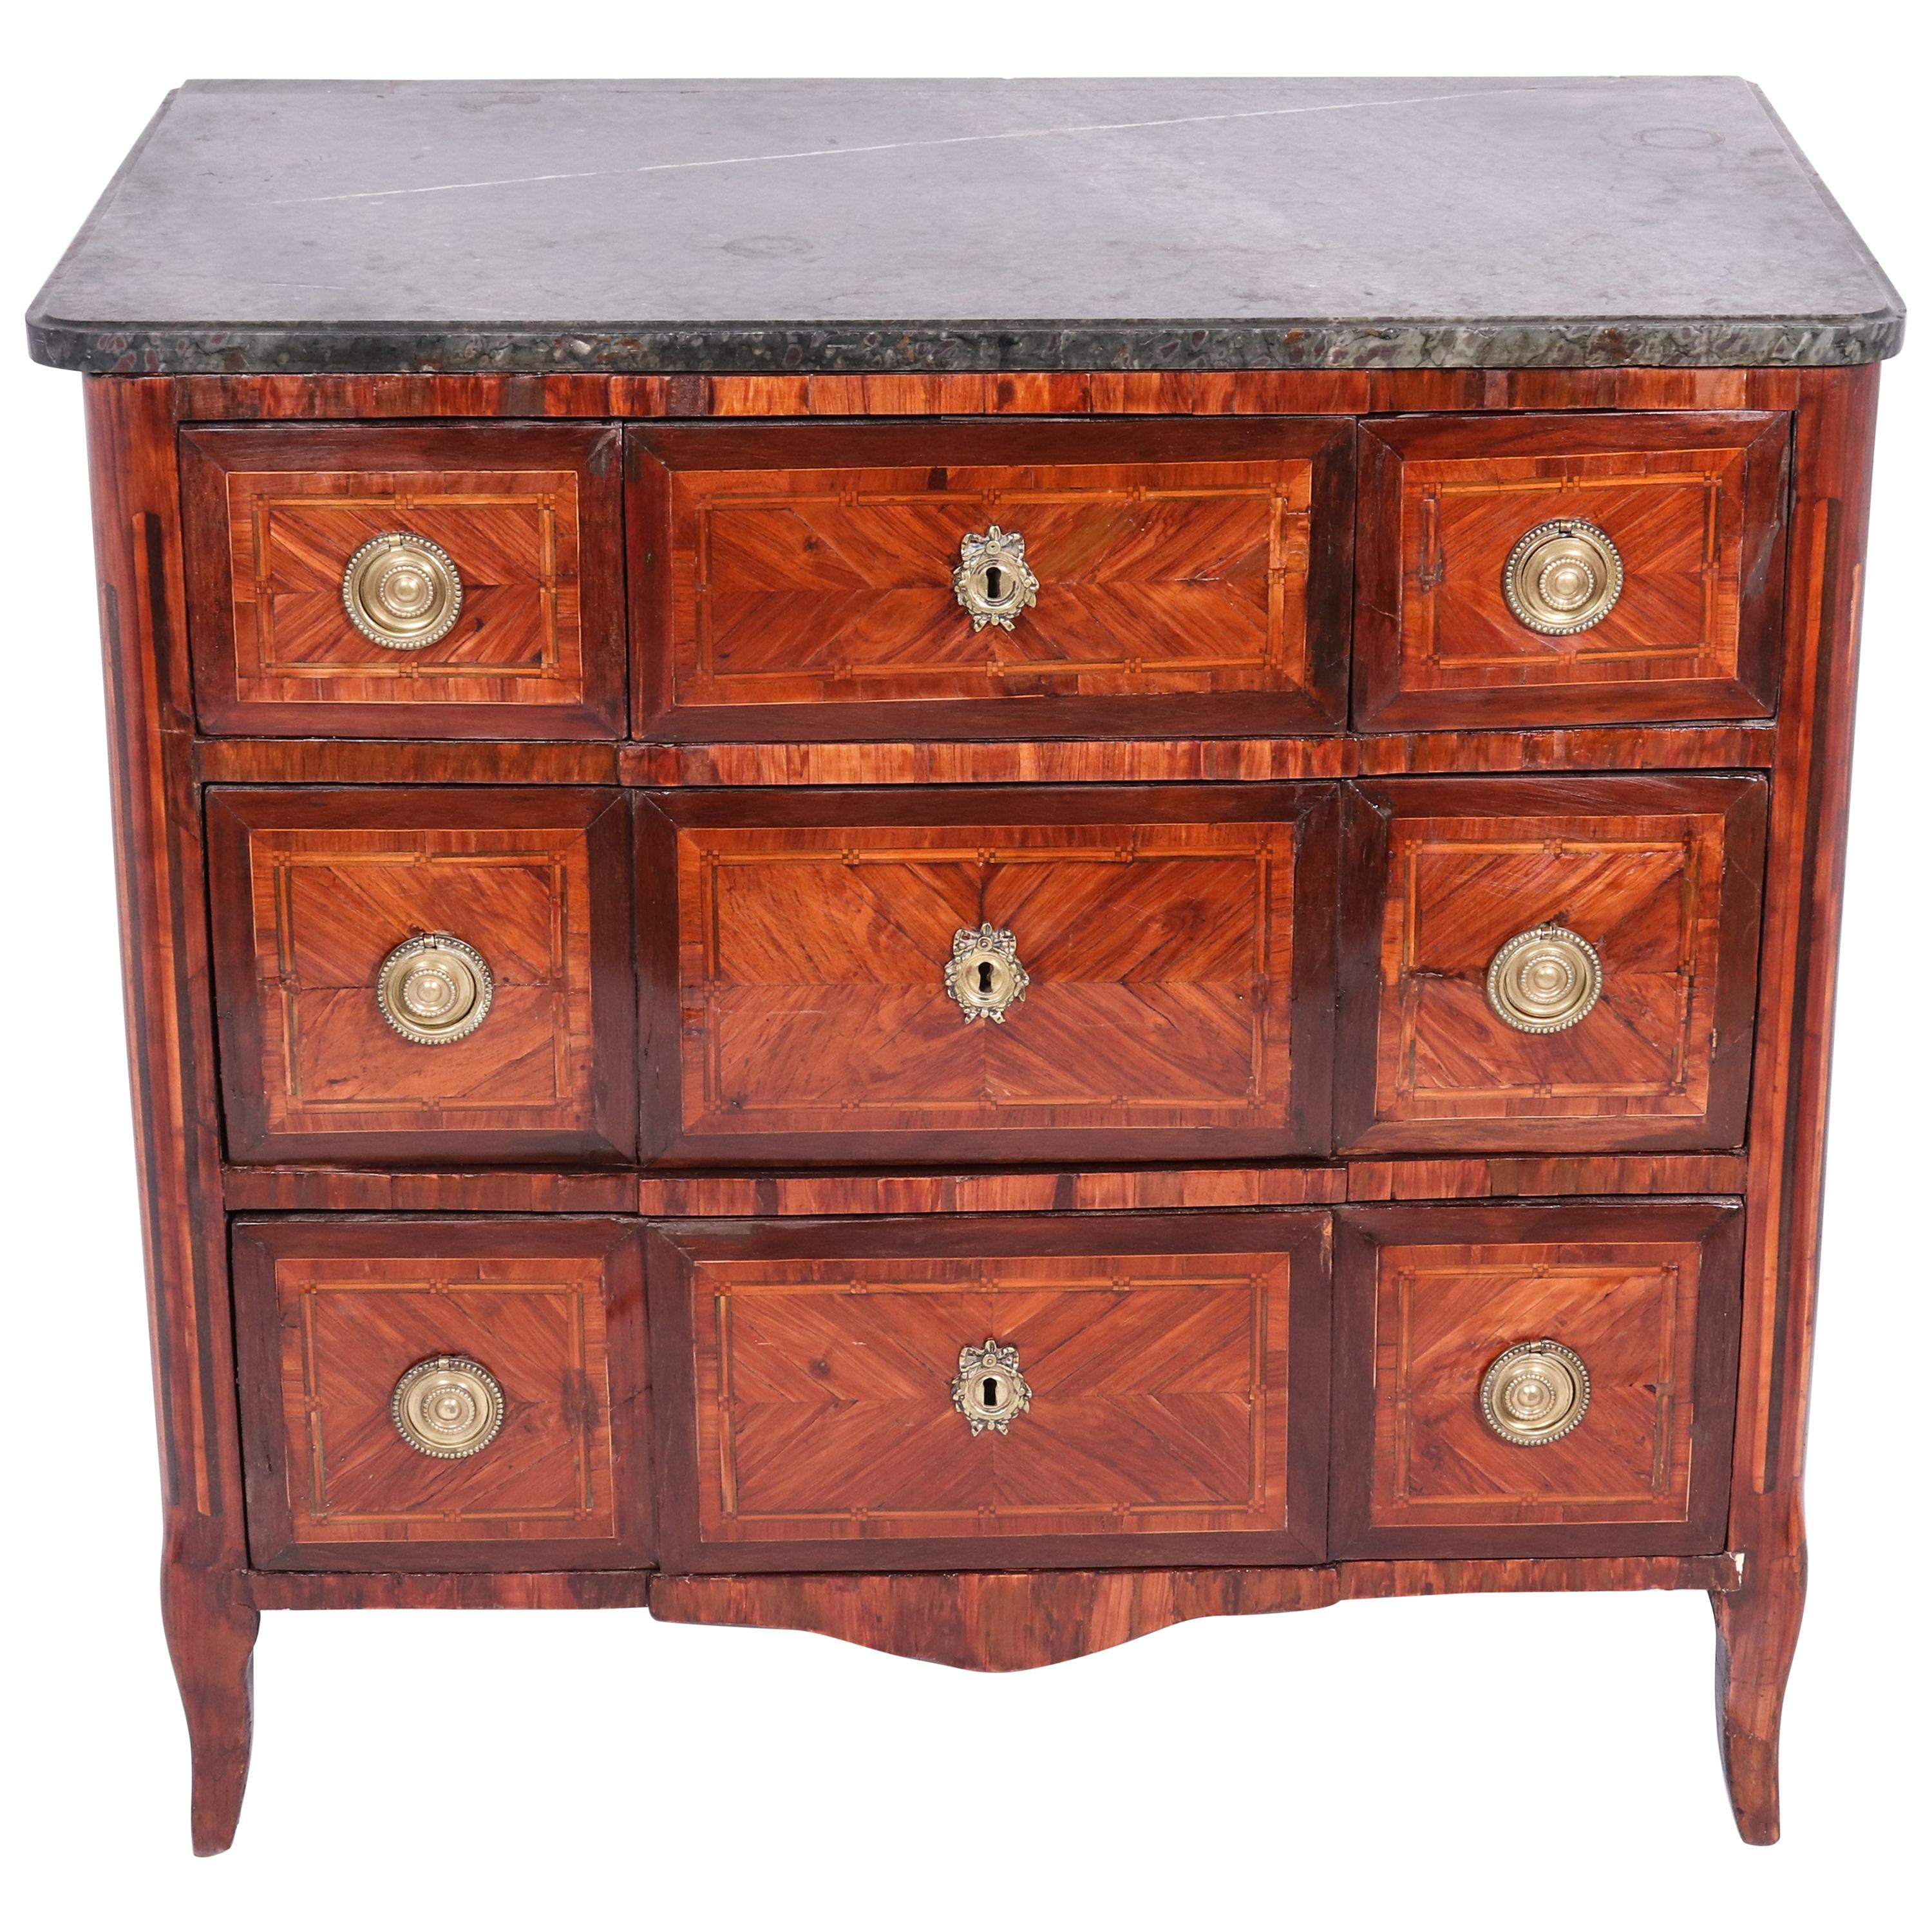 French Louis XVI Transition Style Marble-Top Commode